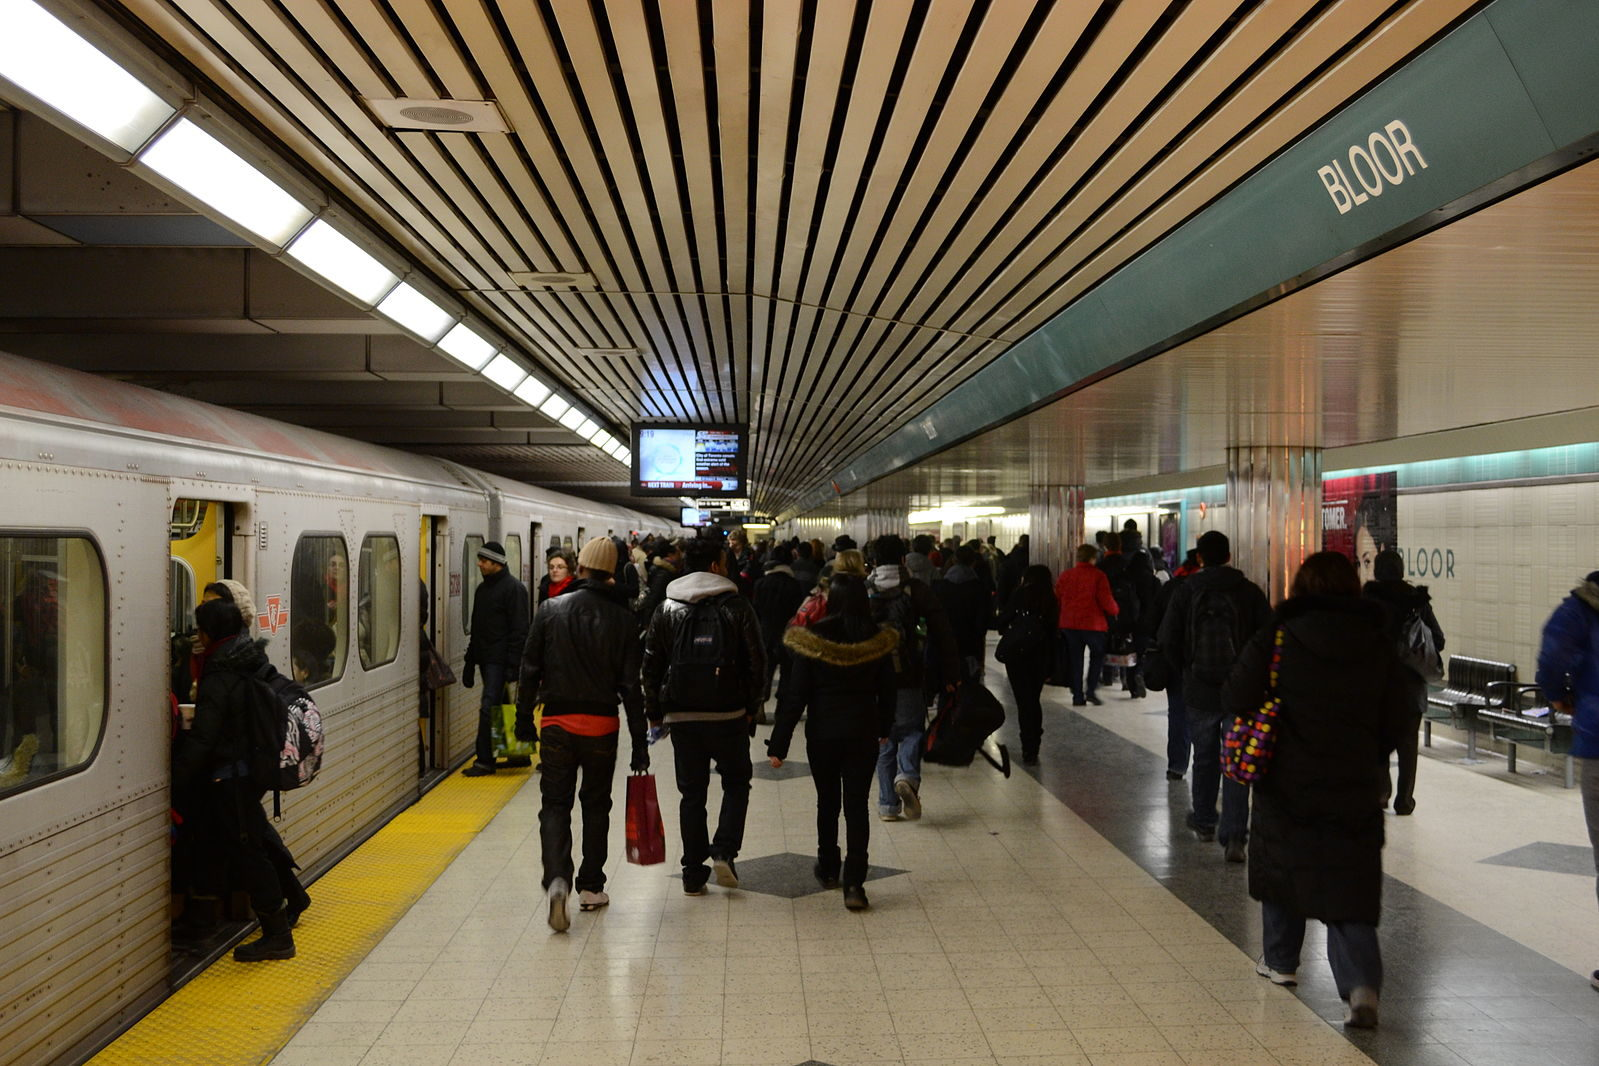 A file photo from a TTC subway station. (Courtesy of Ryersonian Staff)